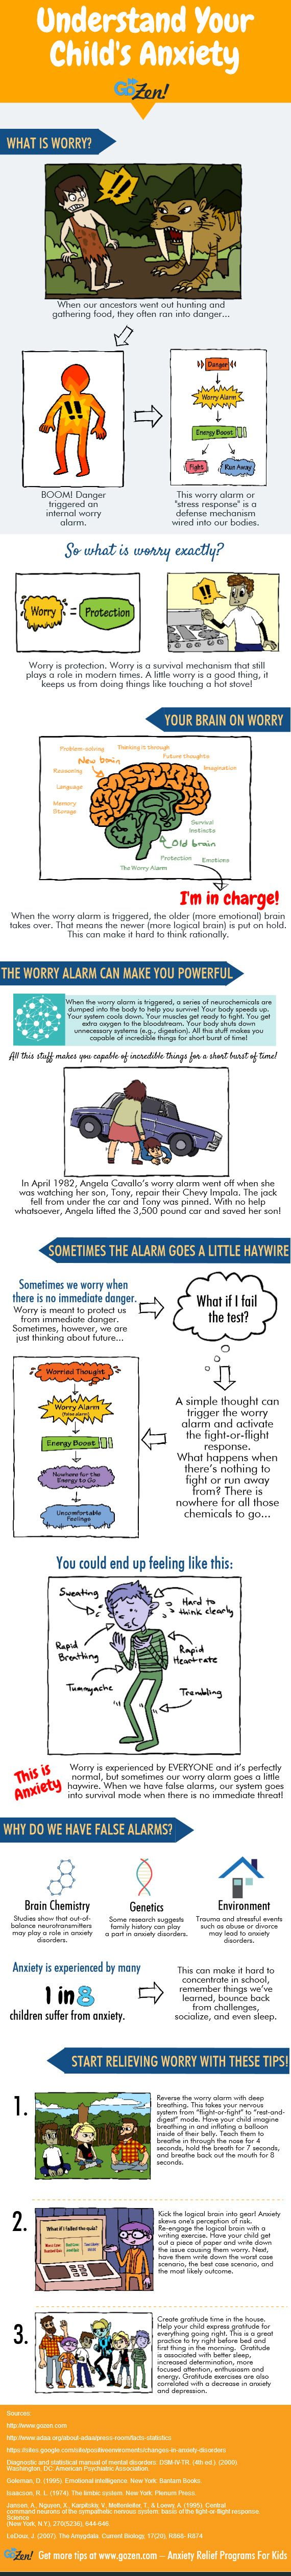 "If you've never suffered from anxiety, it can be challenging to understand what a child is truly experiencing. In fact, excessive worrying may seem like a normal part of growing up and something kids just have to ""deal"" with. This infographic breaks down the very real and often debilitating feeling of anxiety. Recognizing how and why the brain and body transform in moments of anxiety is a first step in helping alleviate the condition."